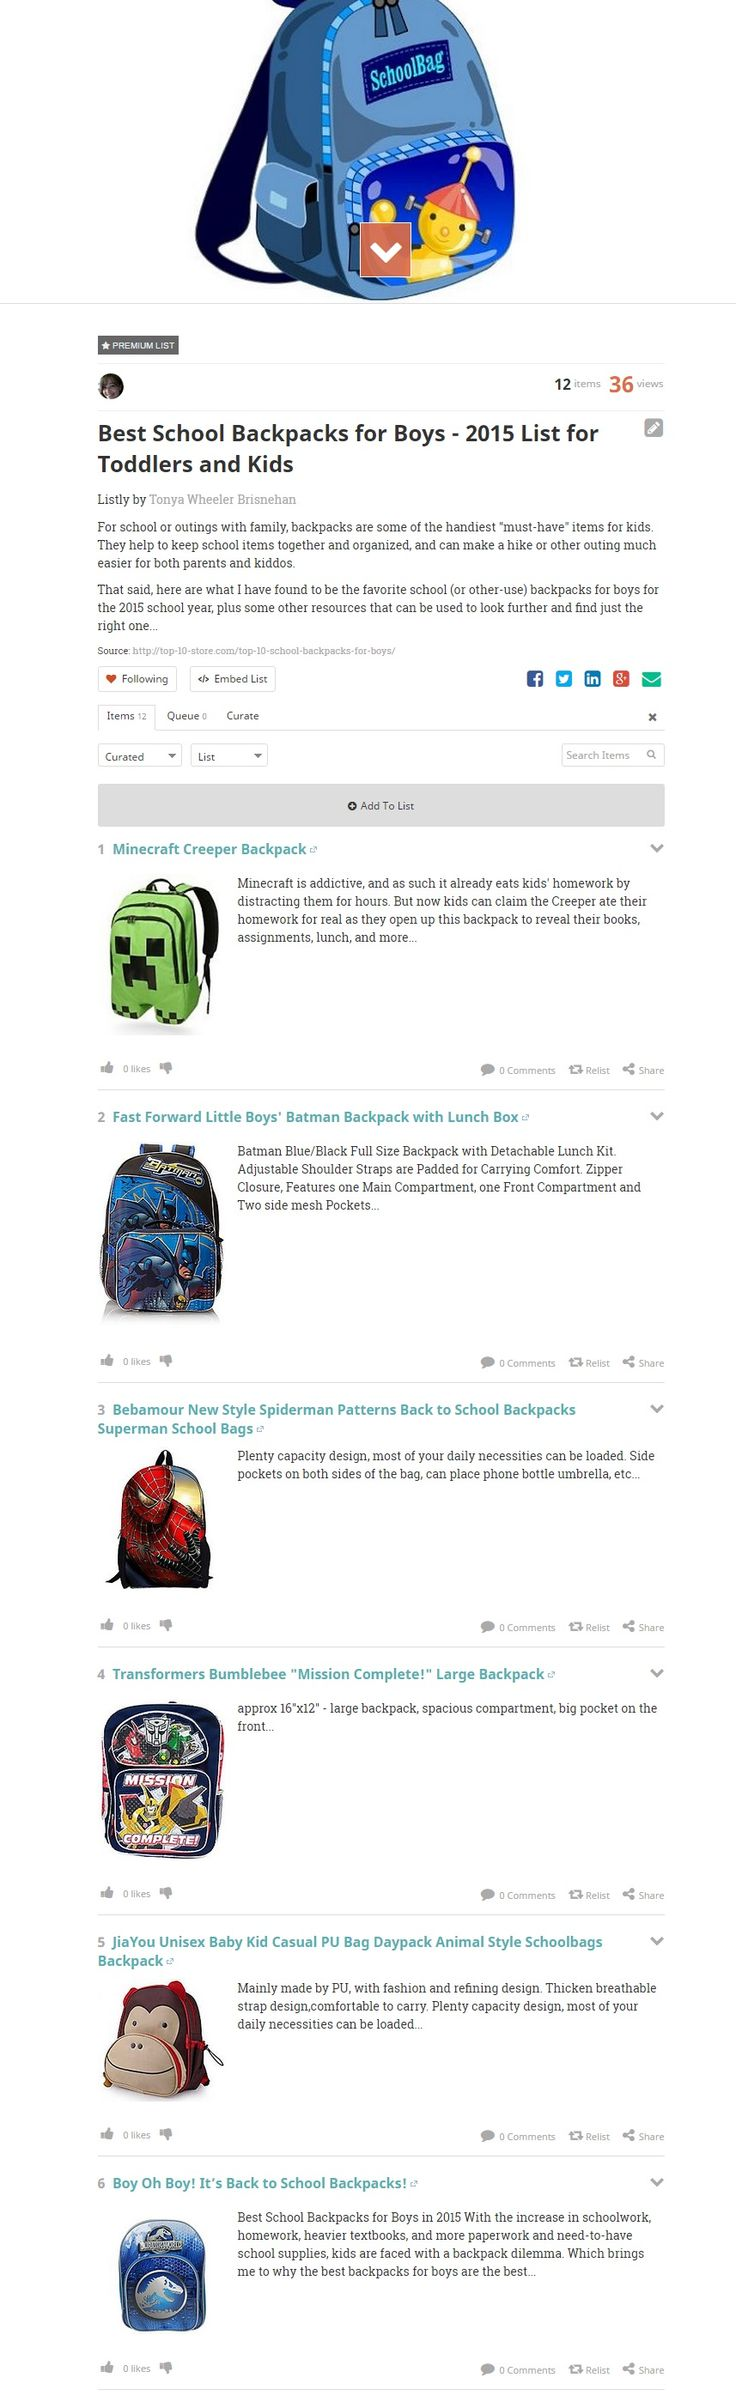 Best School Backpacks for Boys - 2015 List for Toddlers and Kids @ Listly